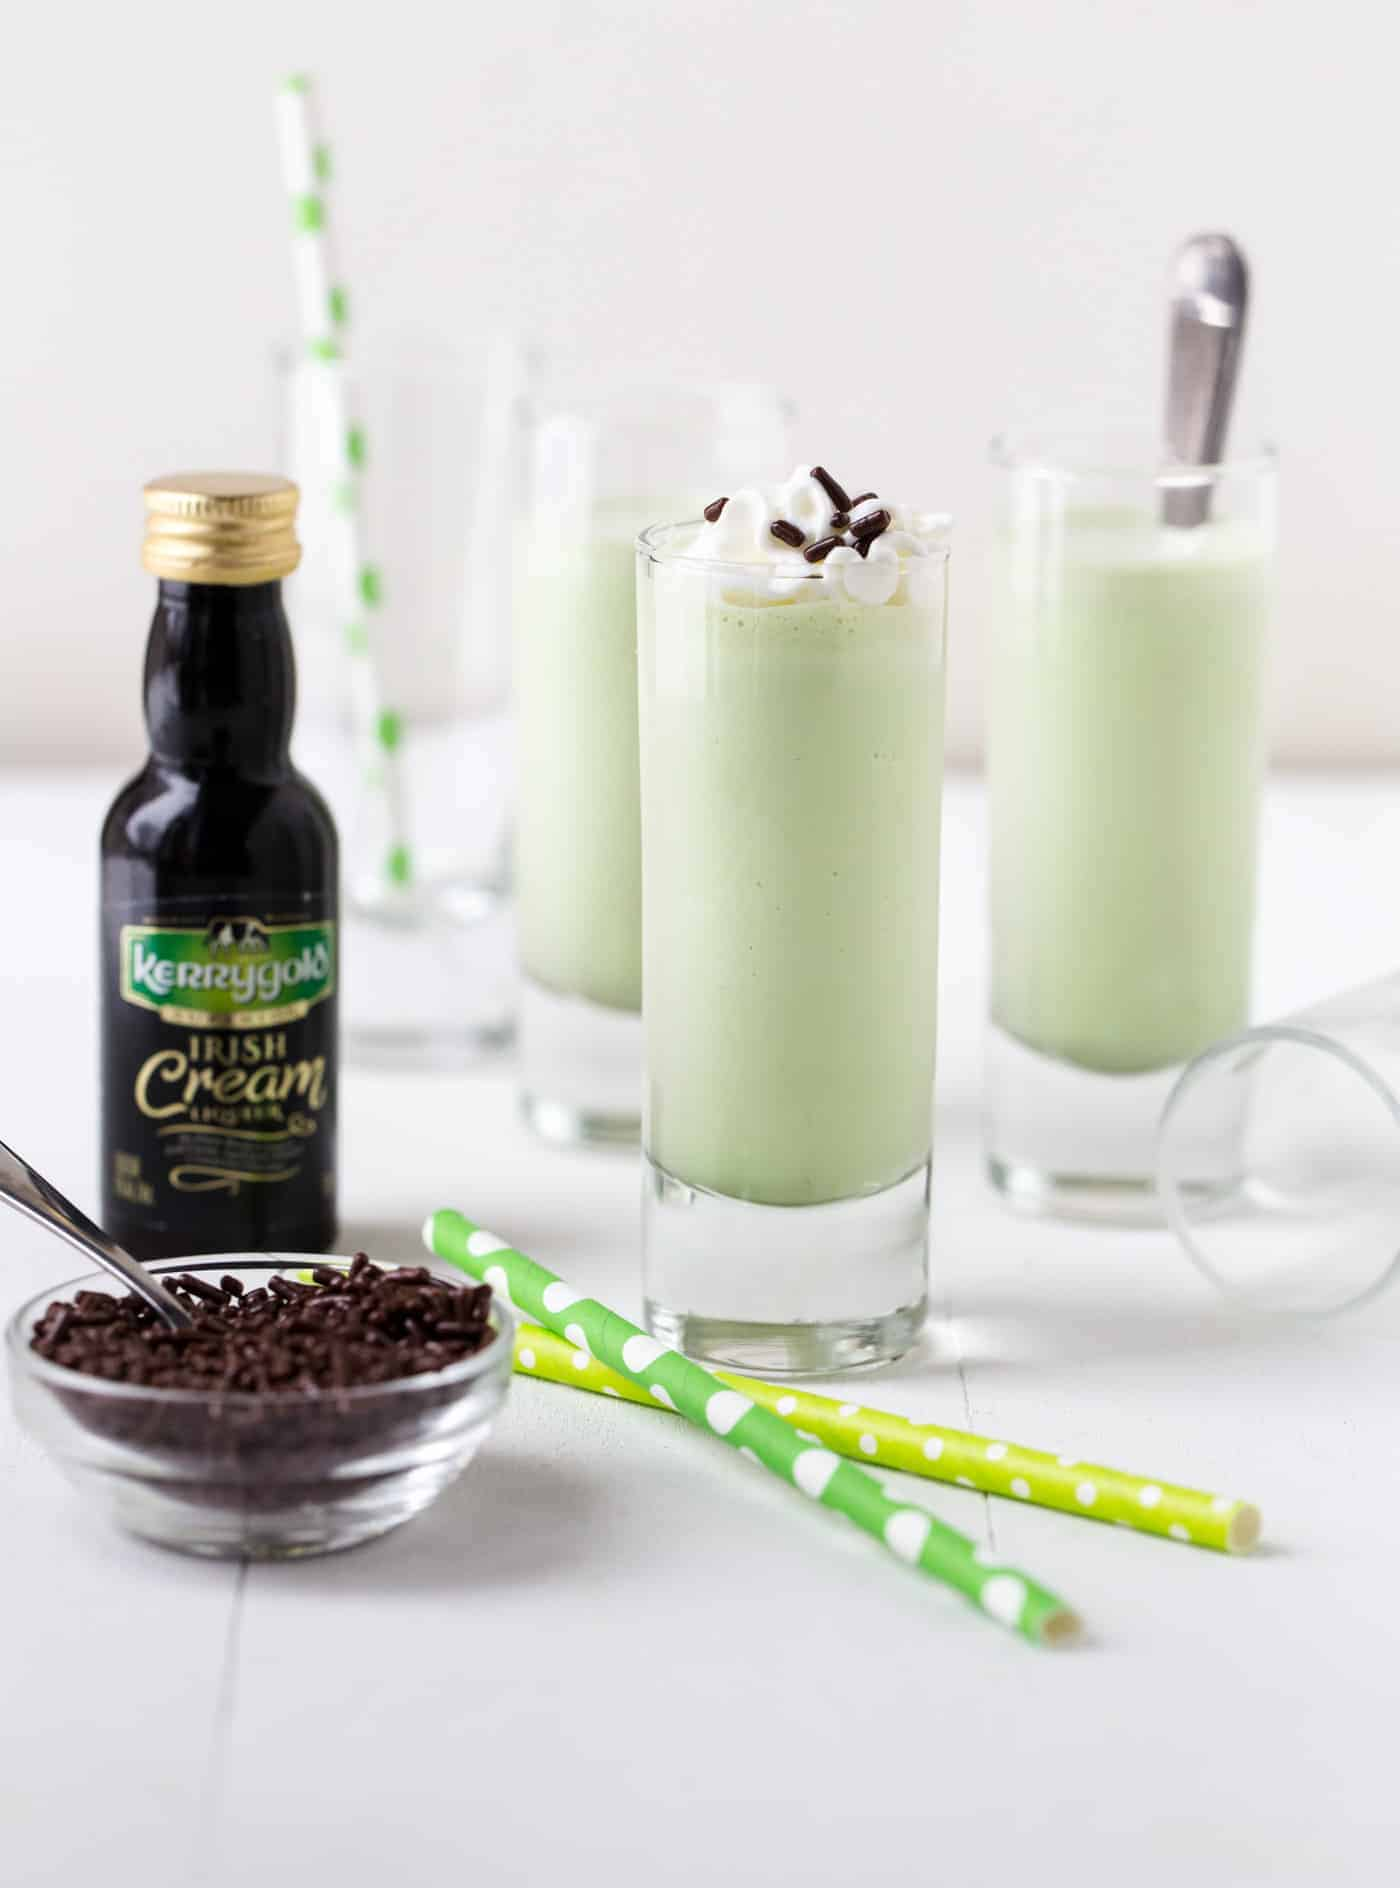 Shot glasses filled with Mini Irish Cream Shakes. Shot glasses are garnished with straws, small spoons, whipped cream and chocolate sprinkles.